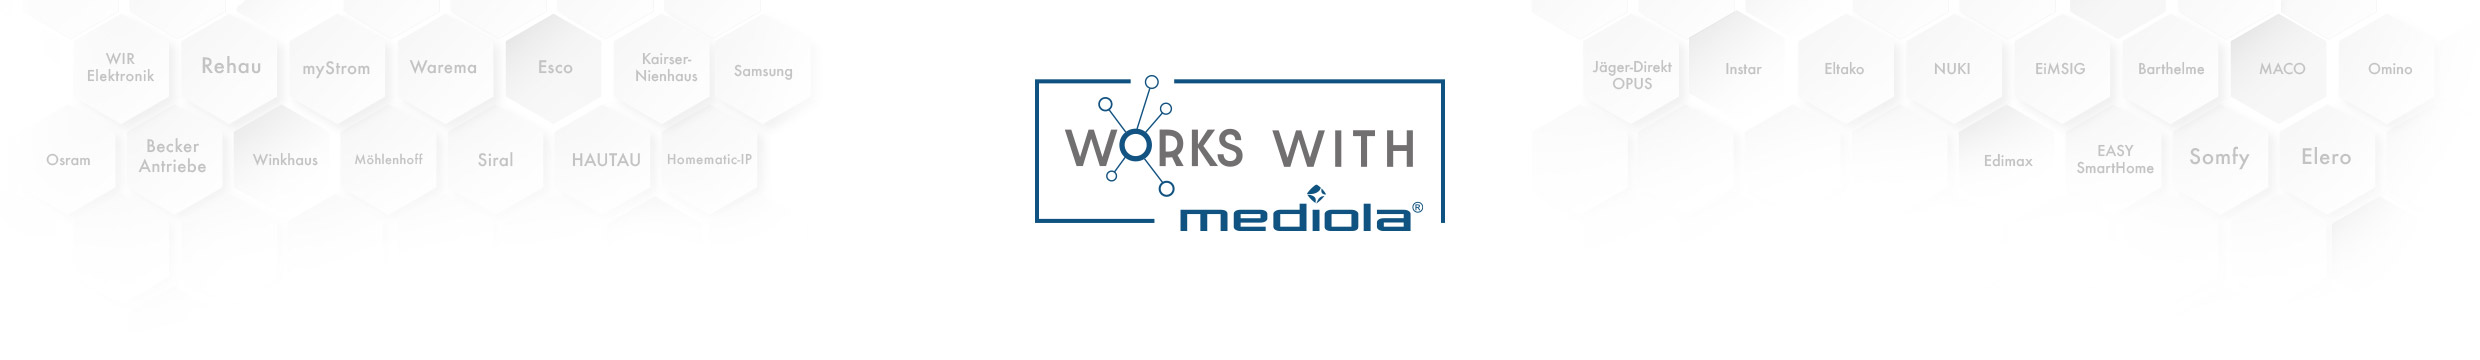 works with mediola headerbild